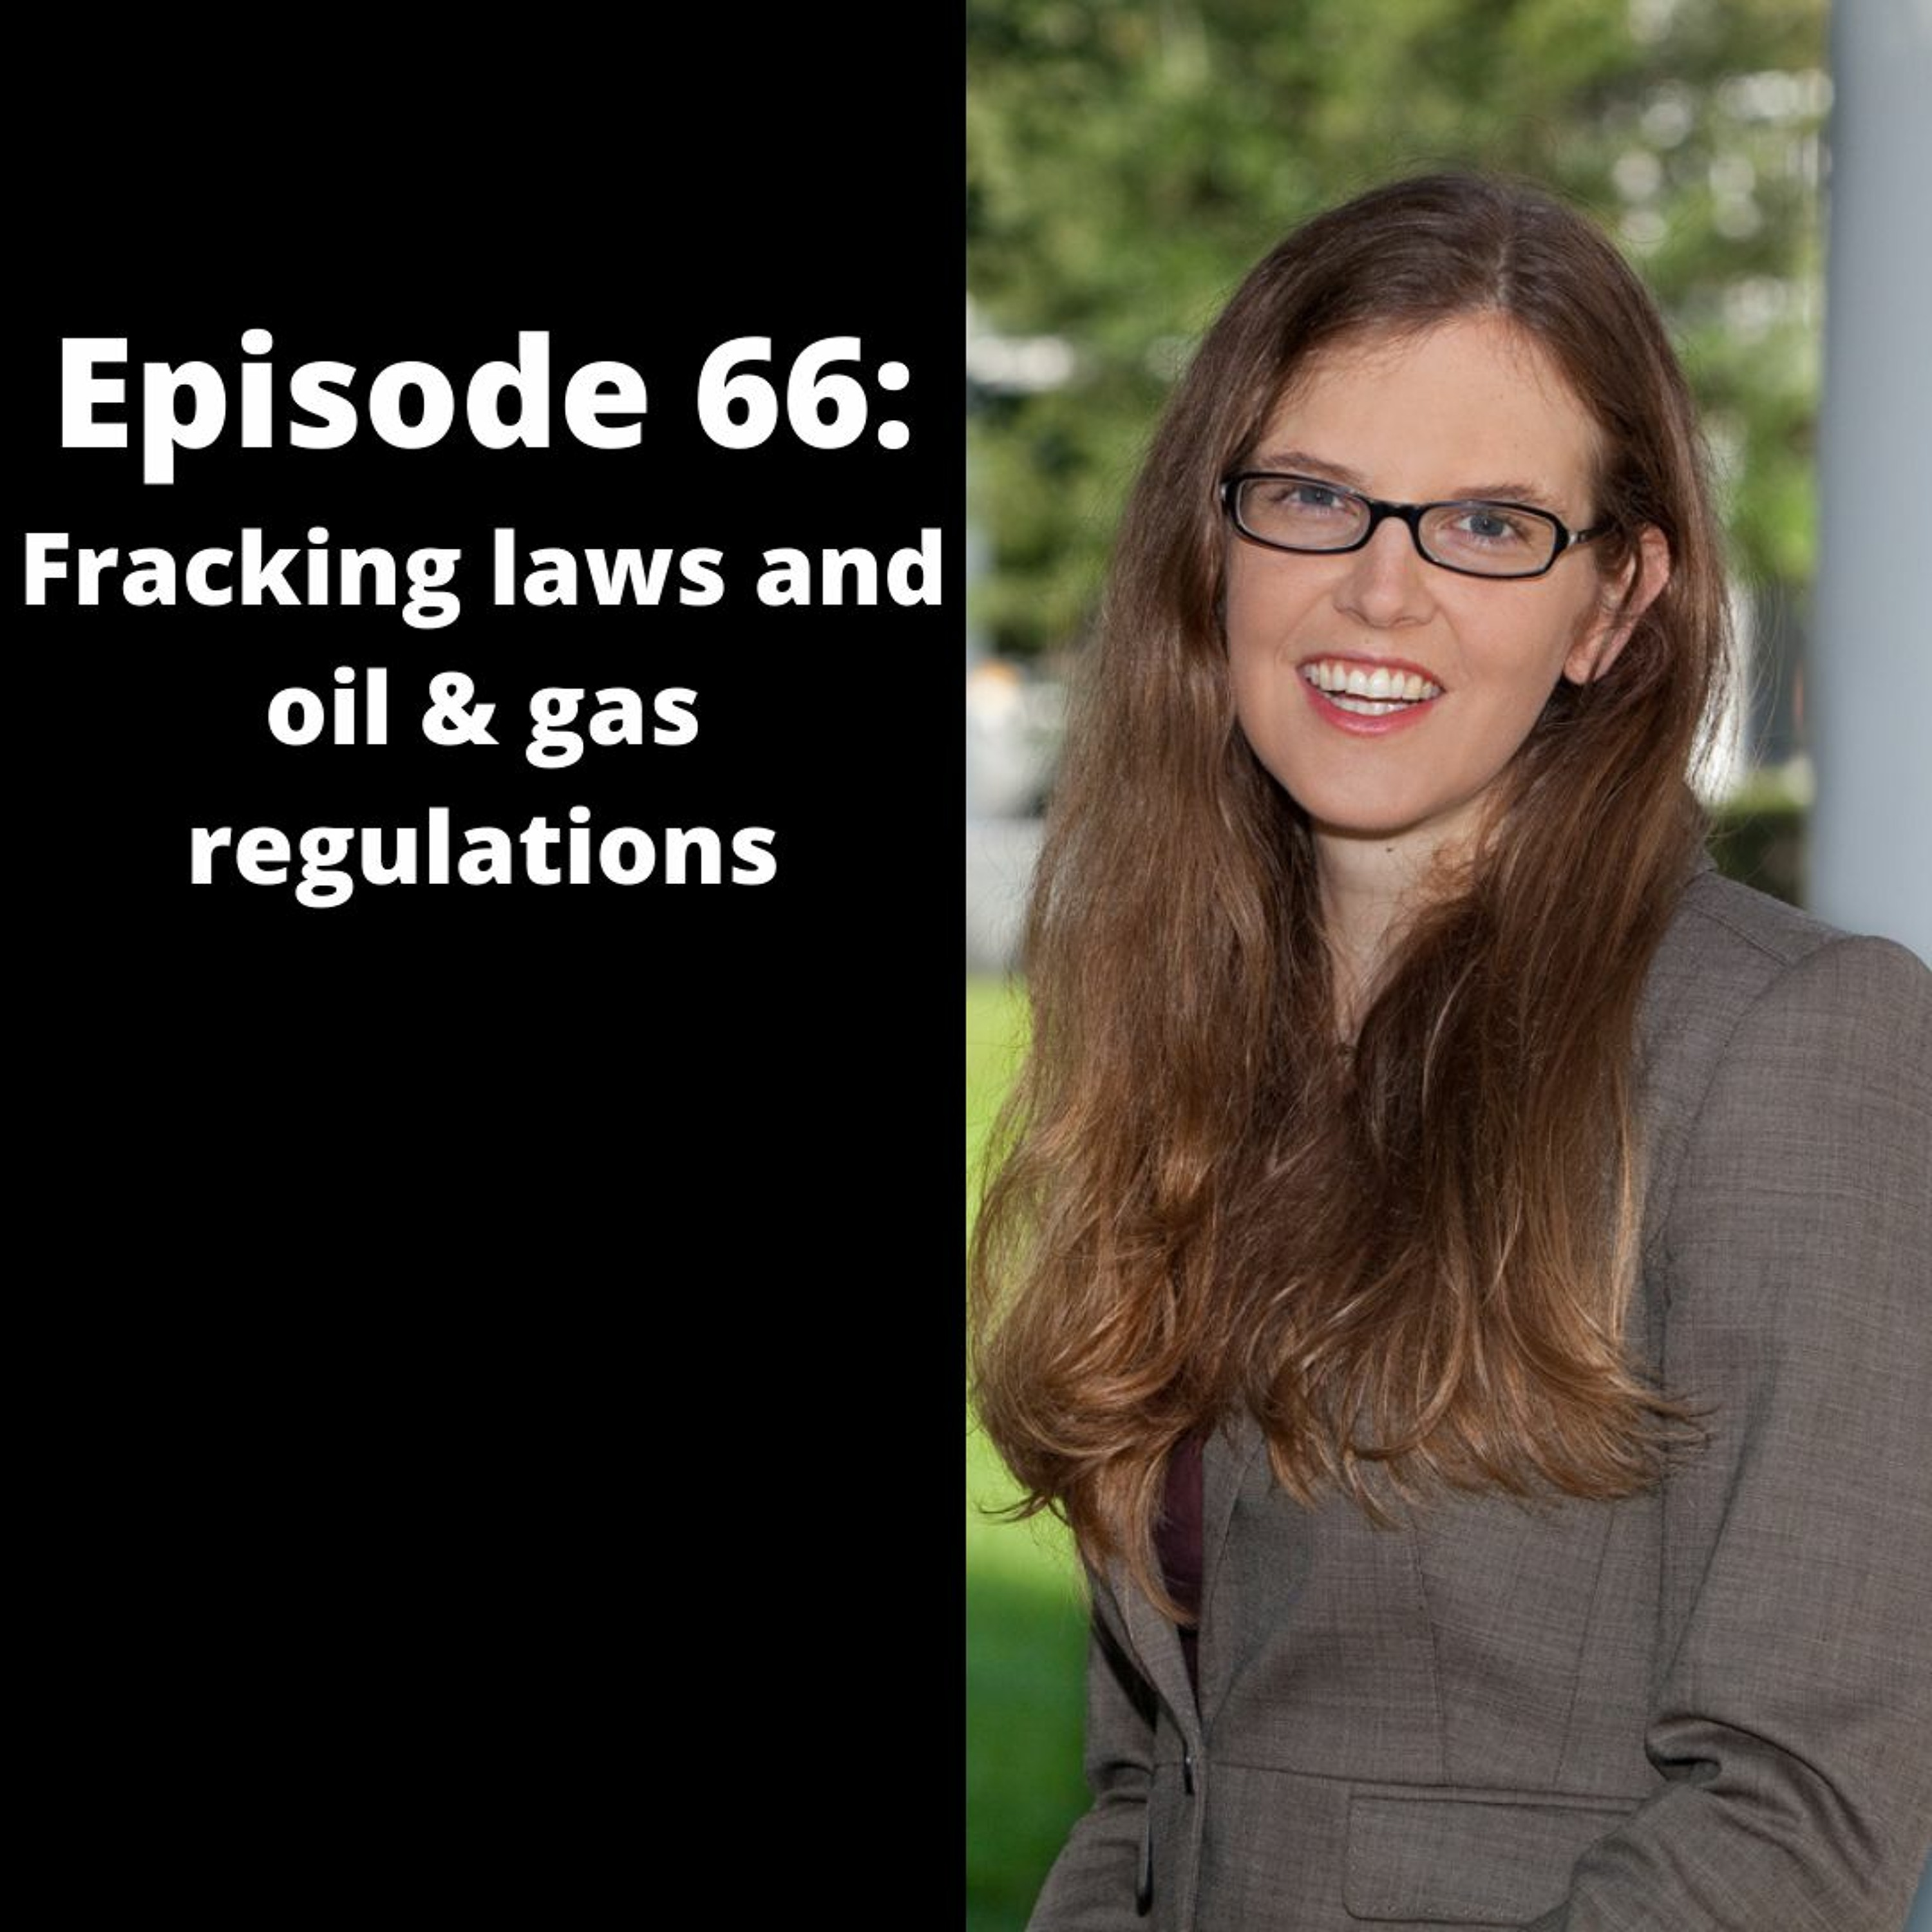 Episode 66: Fracking laws and oil and gas regulations